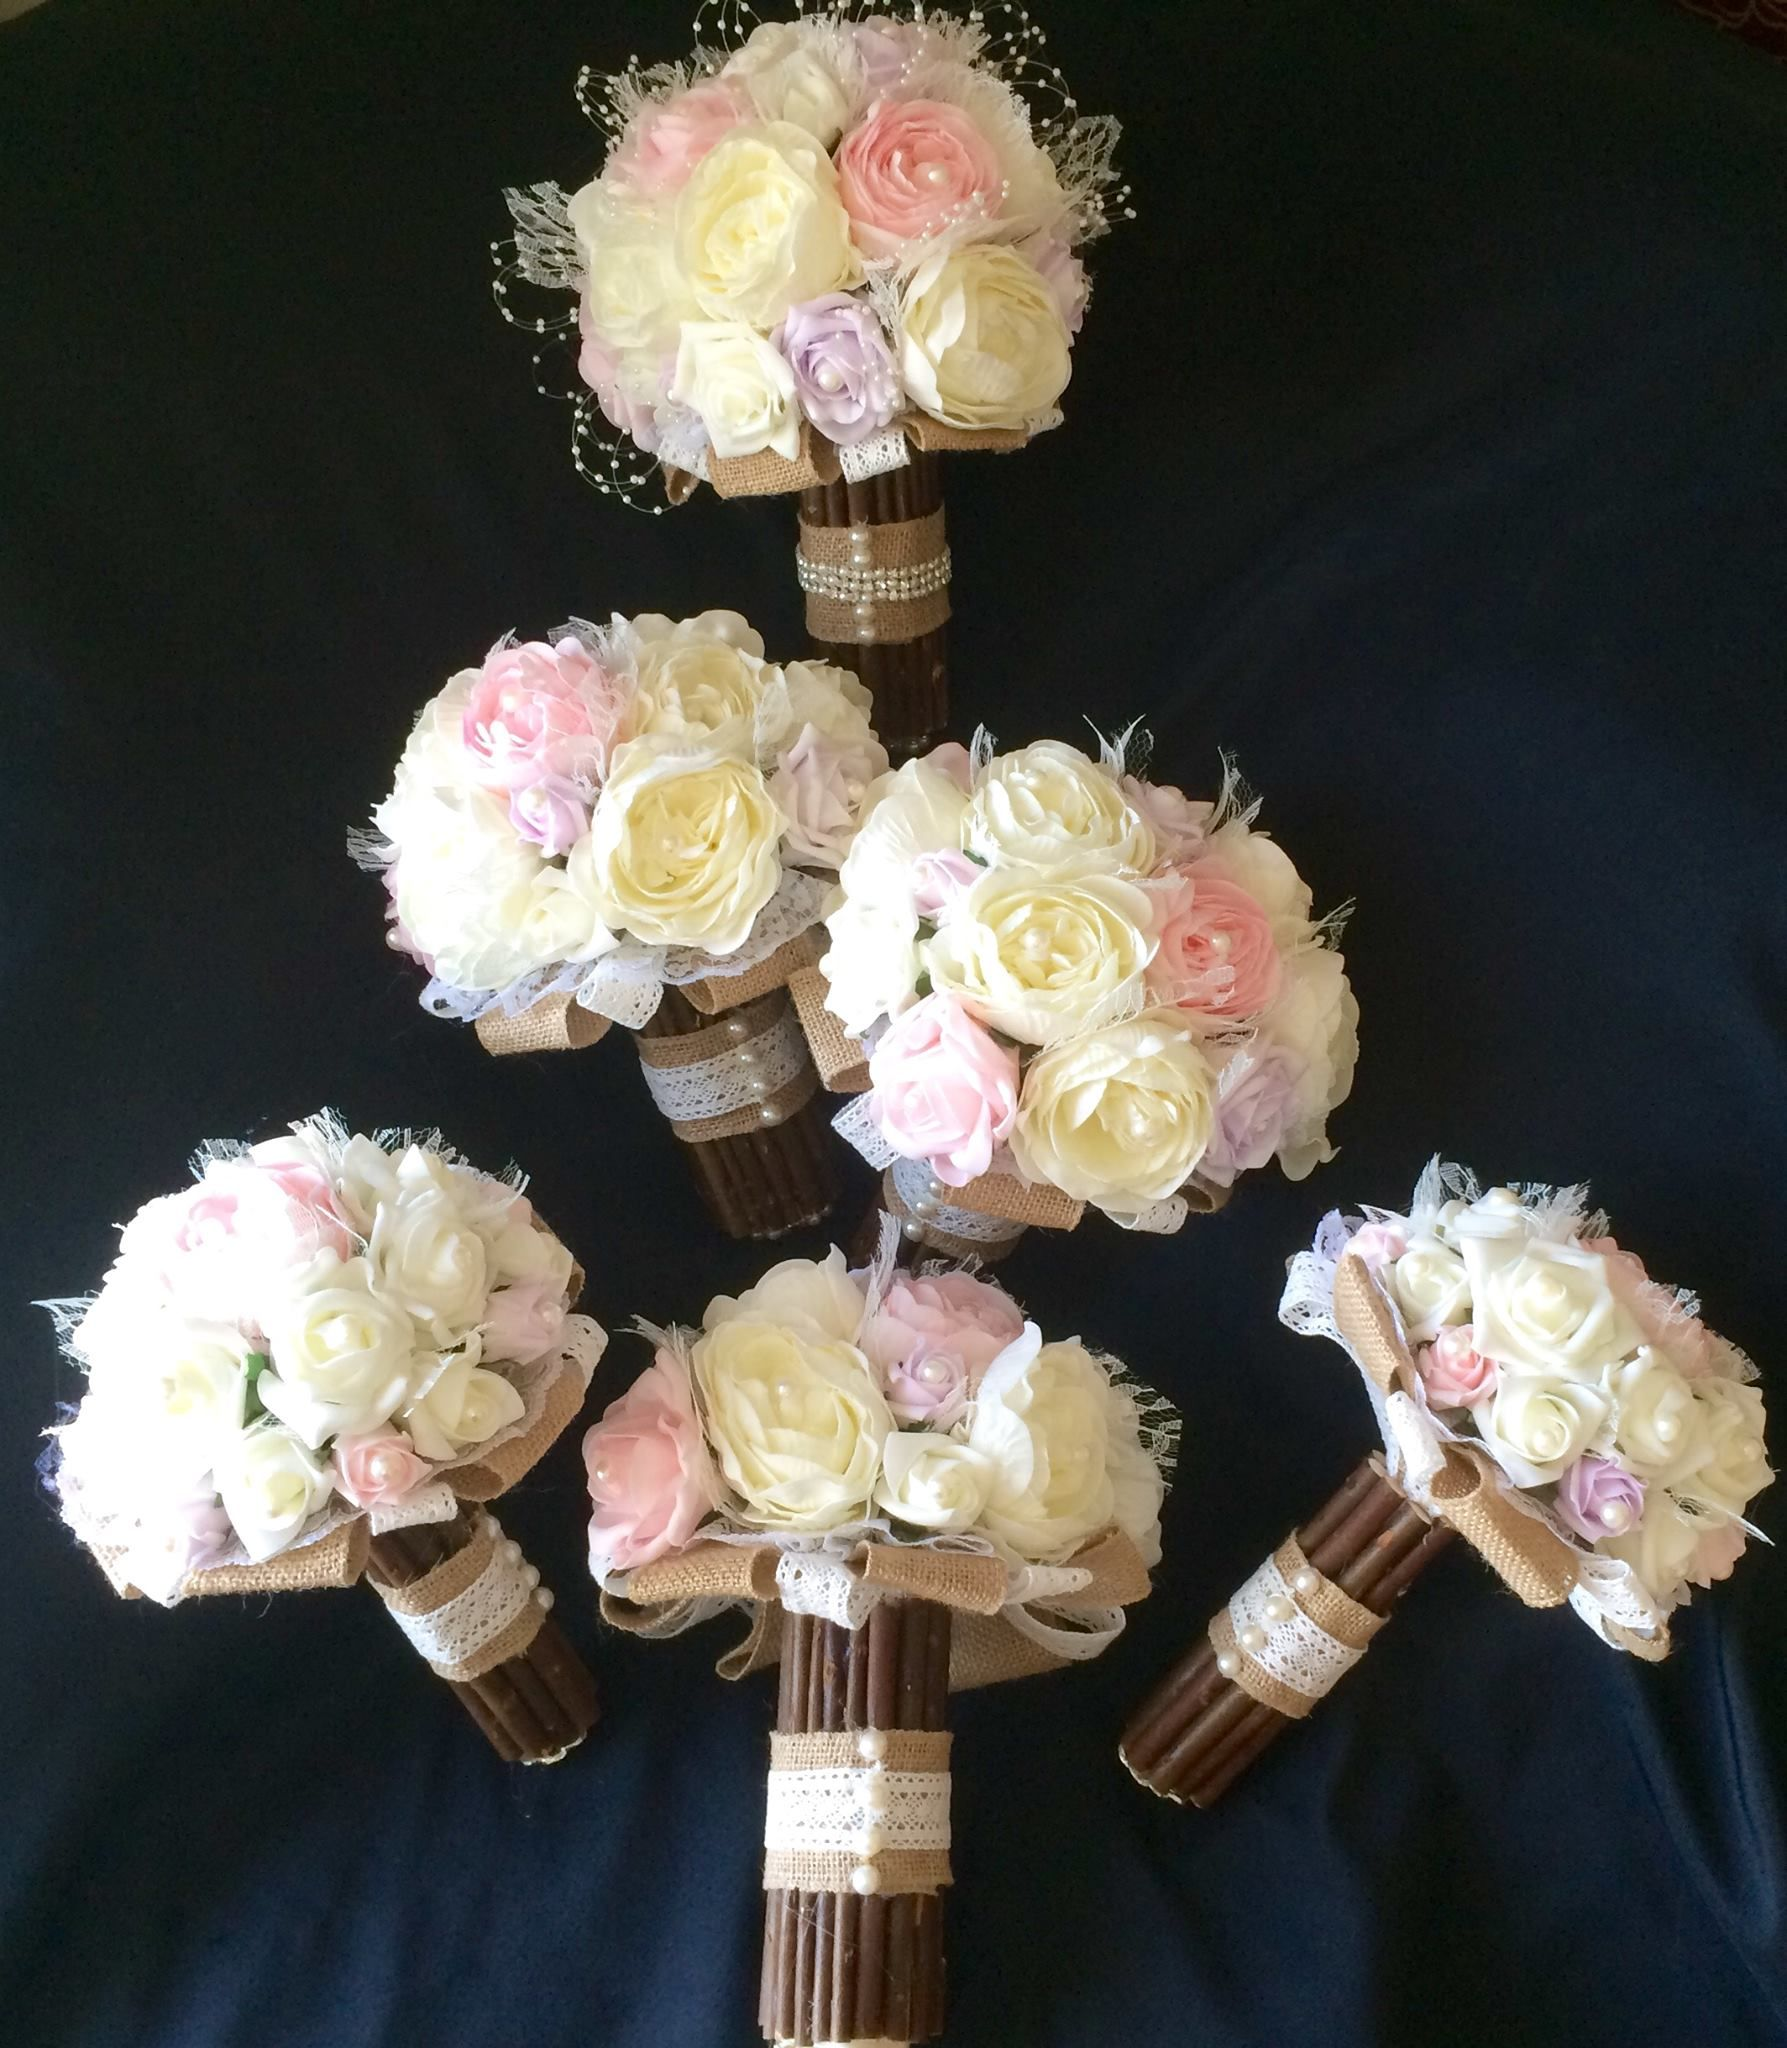 Pale pink/ivory roses with wooden splints for the handles. Then a little burlap with lace for that vintage wedding!!! by Karen @ www.bouquetswithlove.co.uk https://www.facebook.com/Bouquetswithlove/